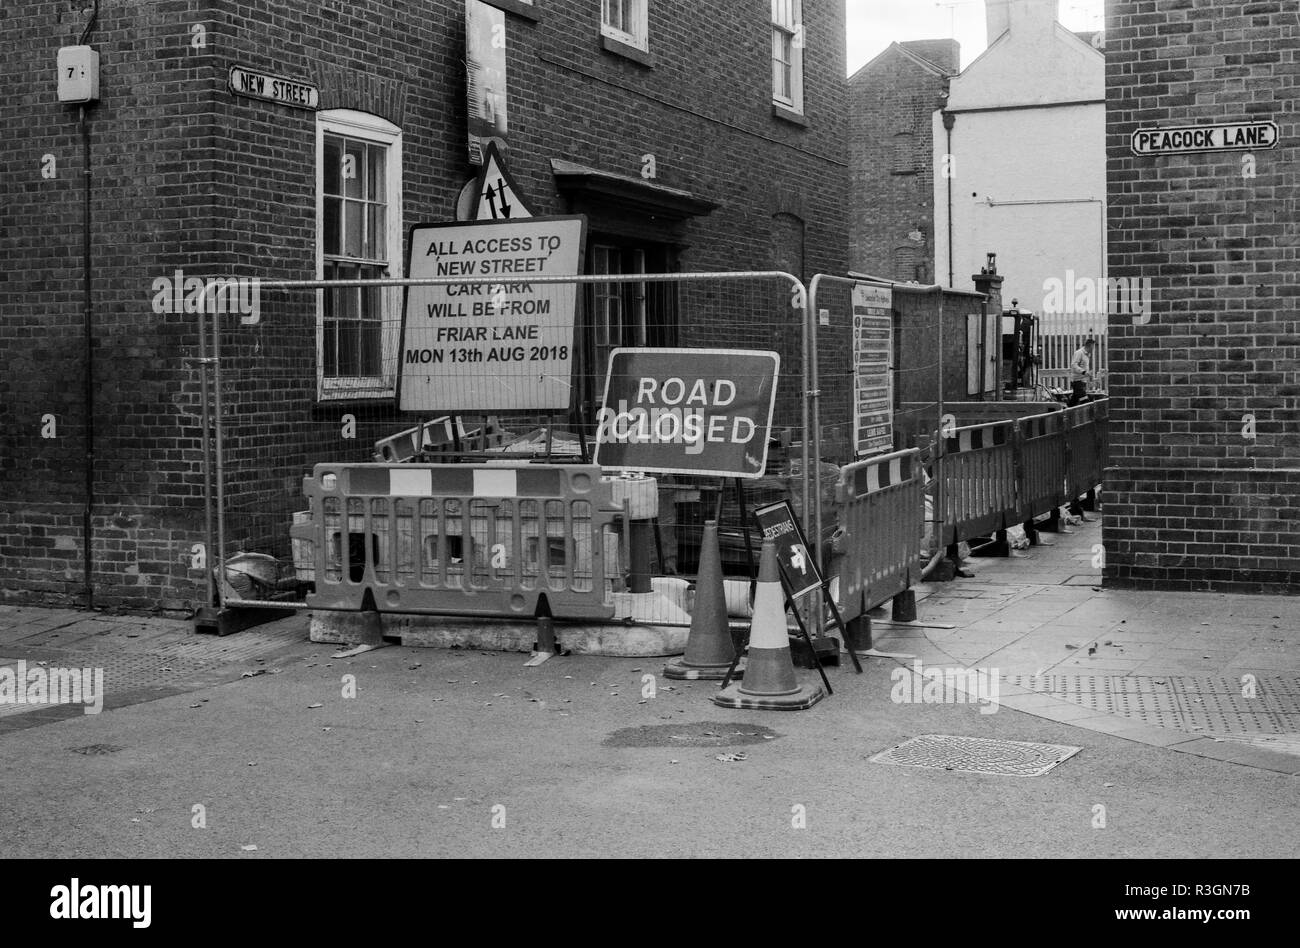 Road works on the junction of New Street & Peacock Lane in Leicester City shot on Ilford 35mm film & Pentax K1000 slr camera - Stock Image